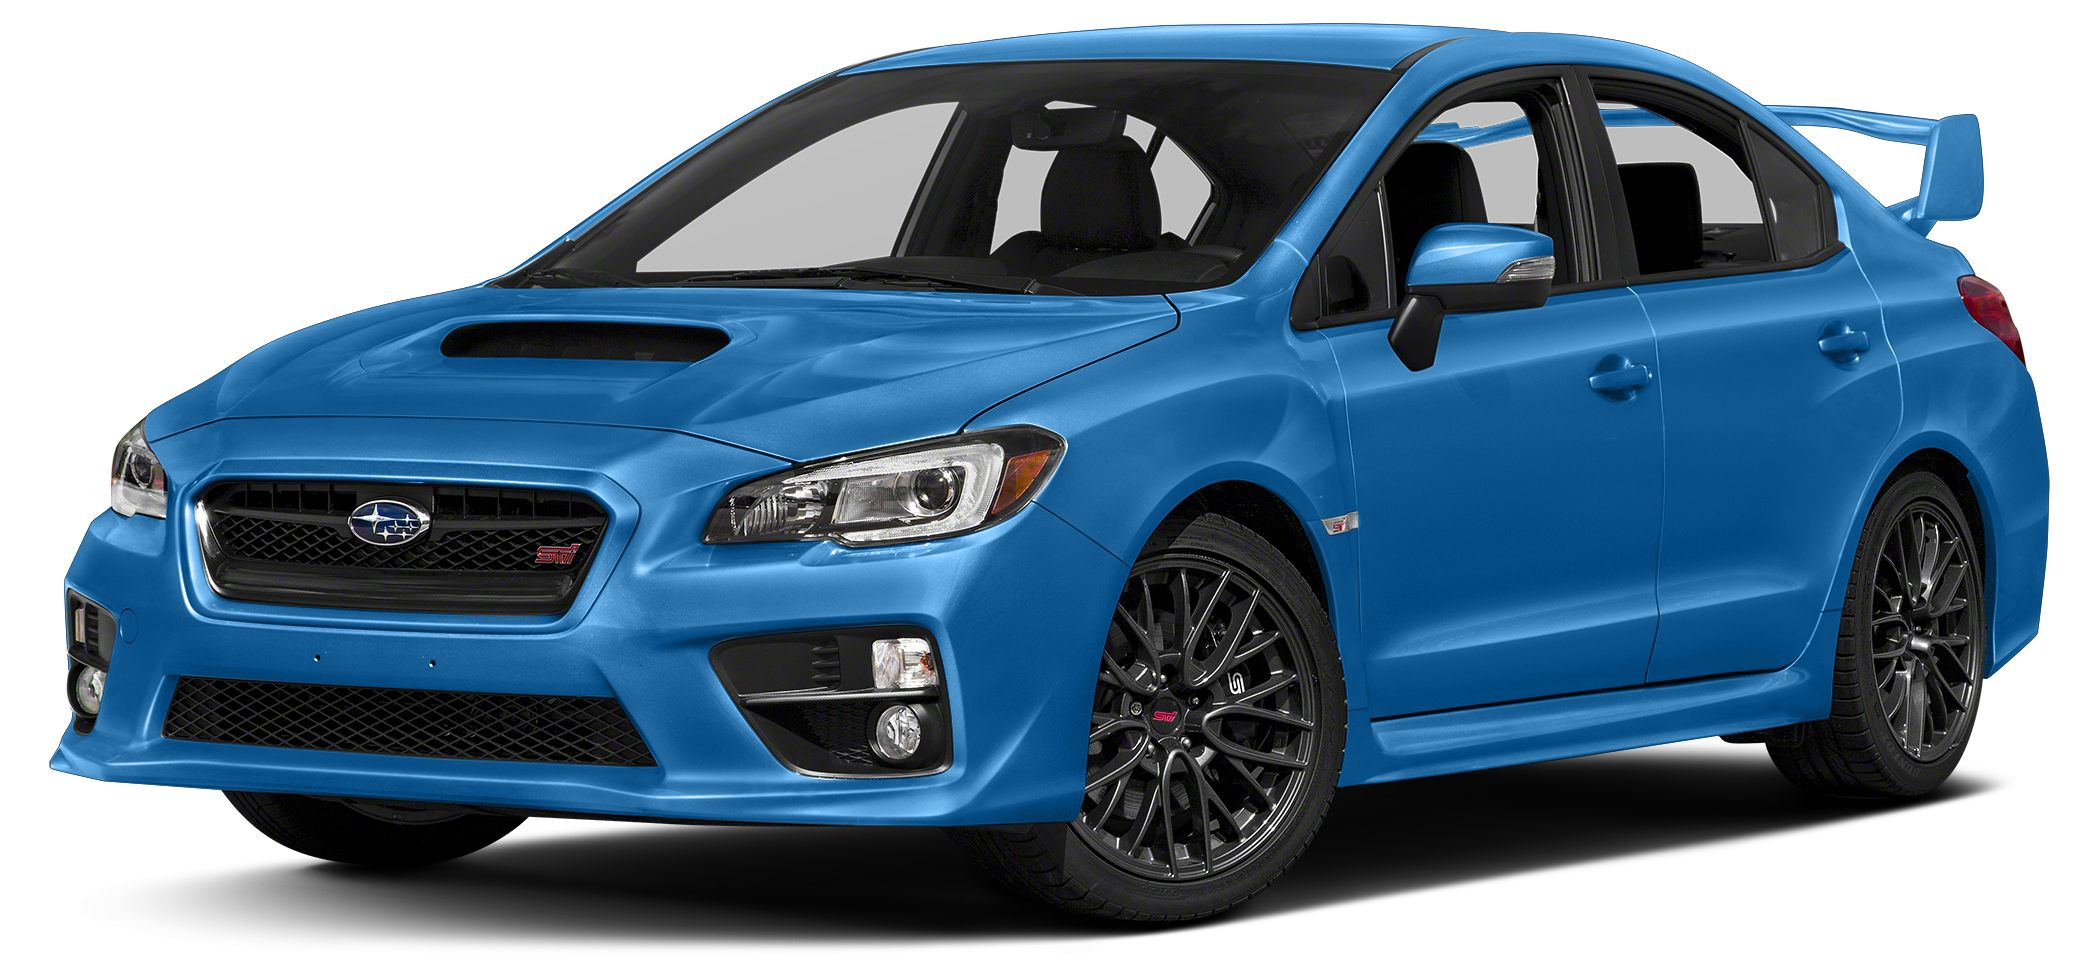 2016 Subaru WRX STI Base WE SELL OUR VEHICLES AT WHOLESALE PRICES AND STAND BEHIND OUR CARS